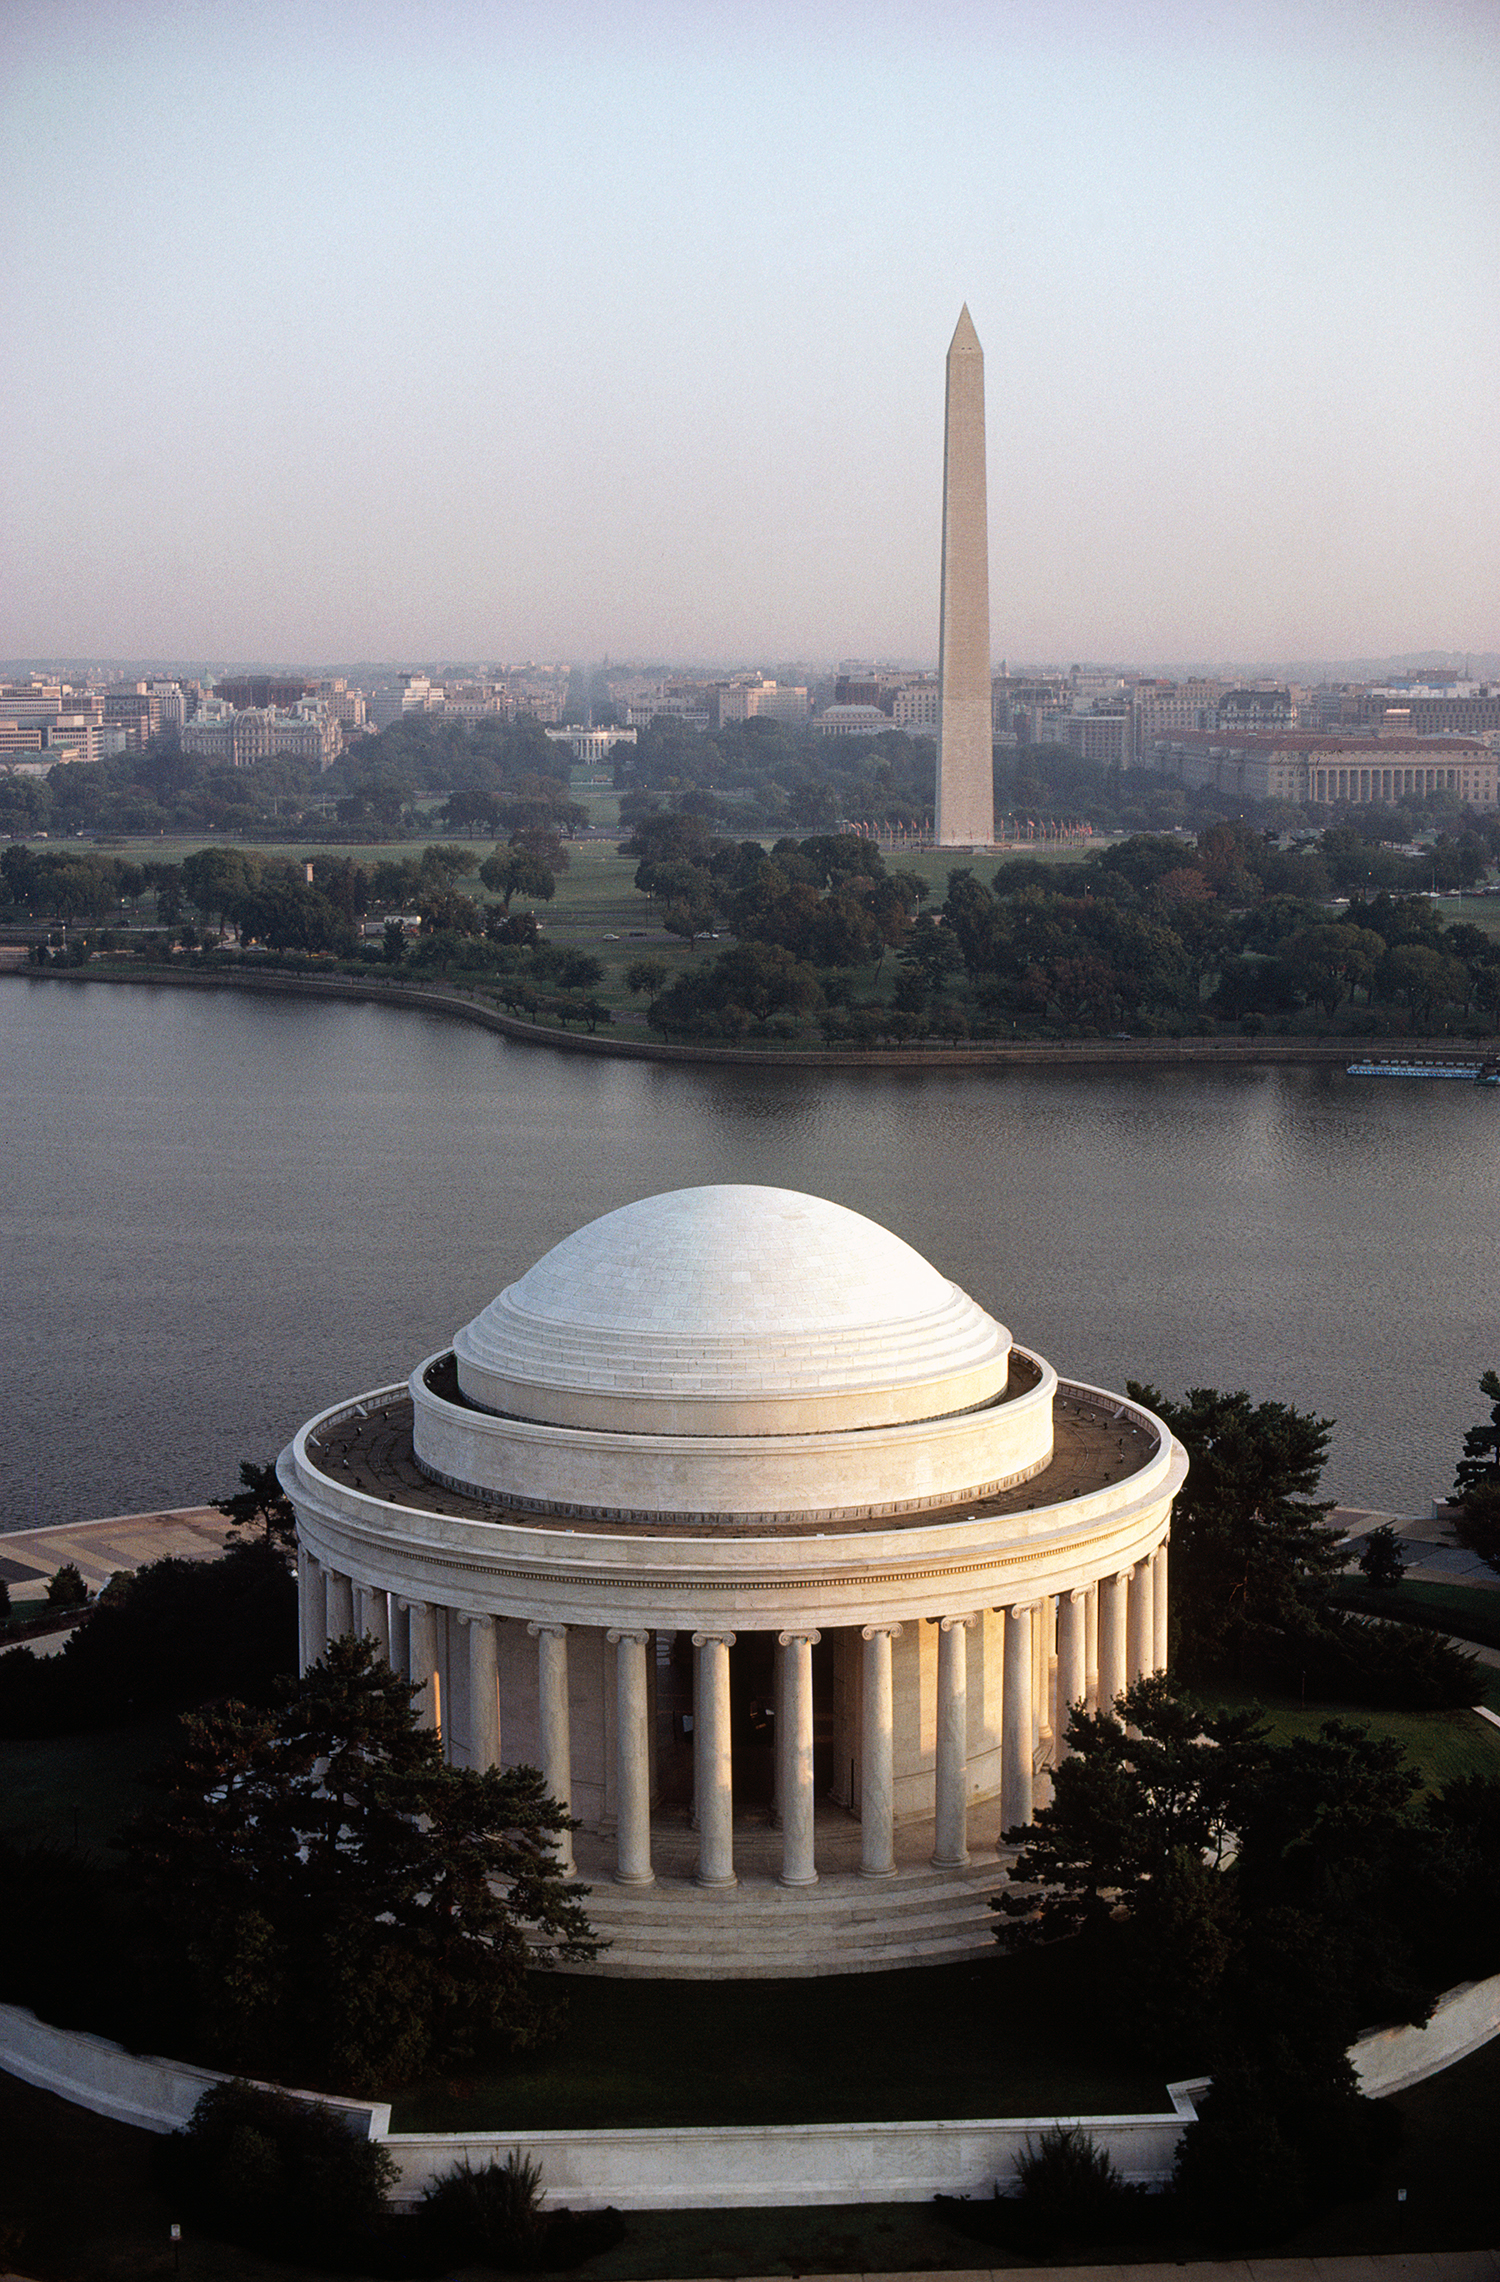 Above the Jefferson